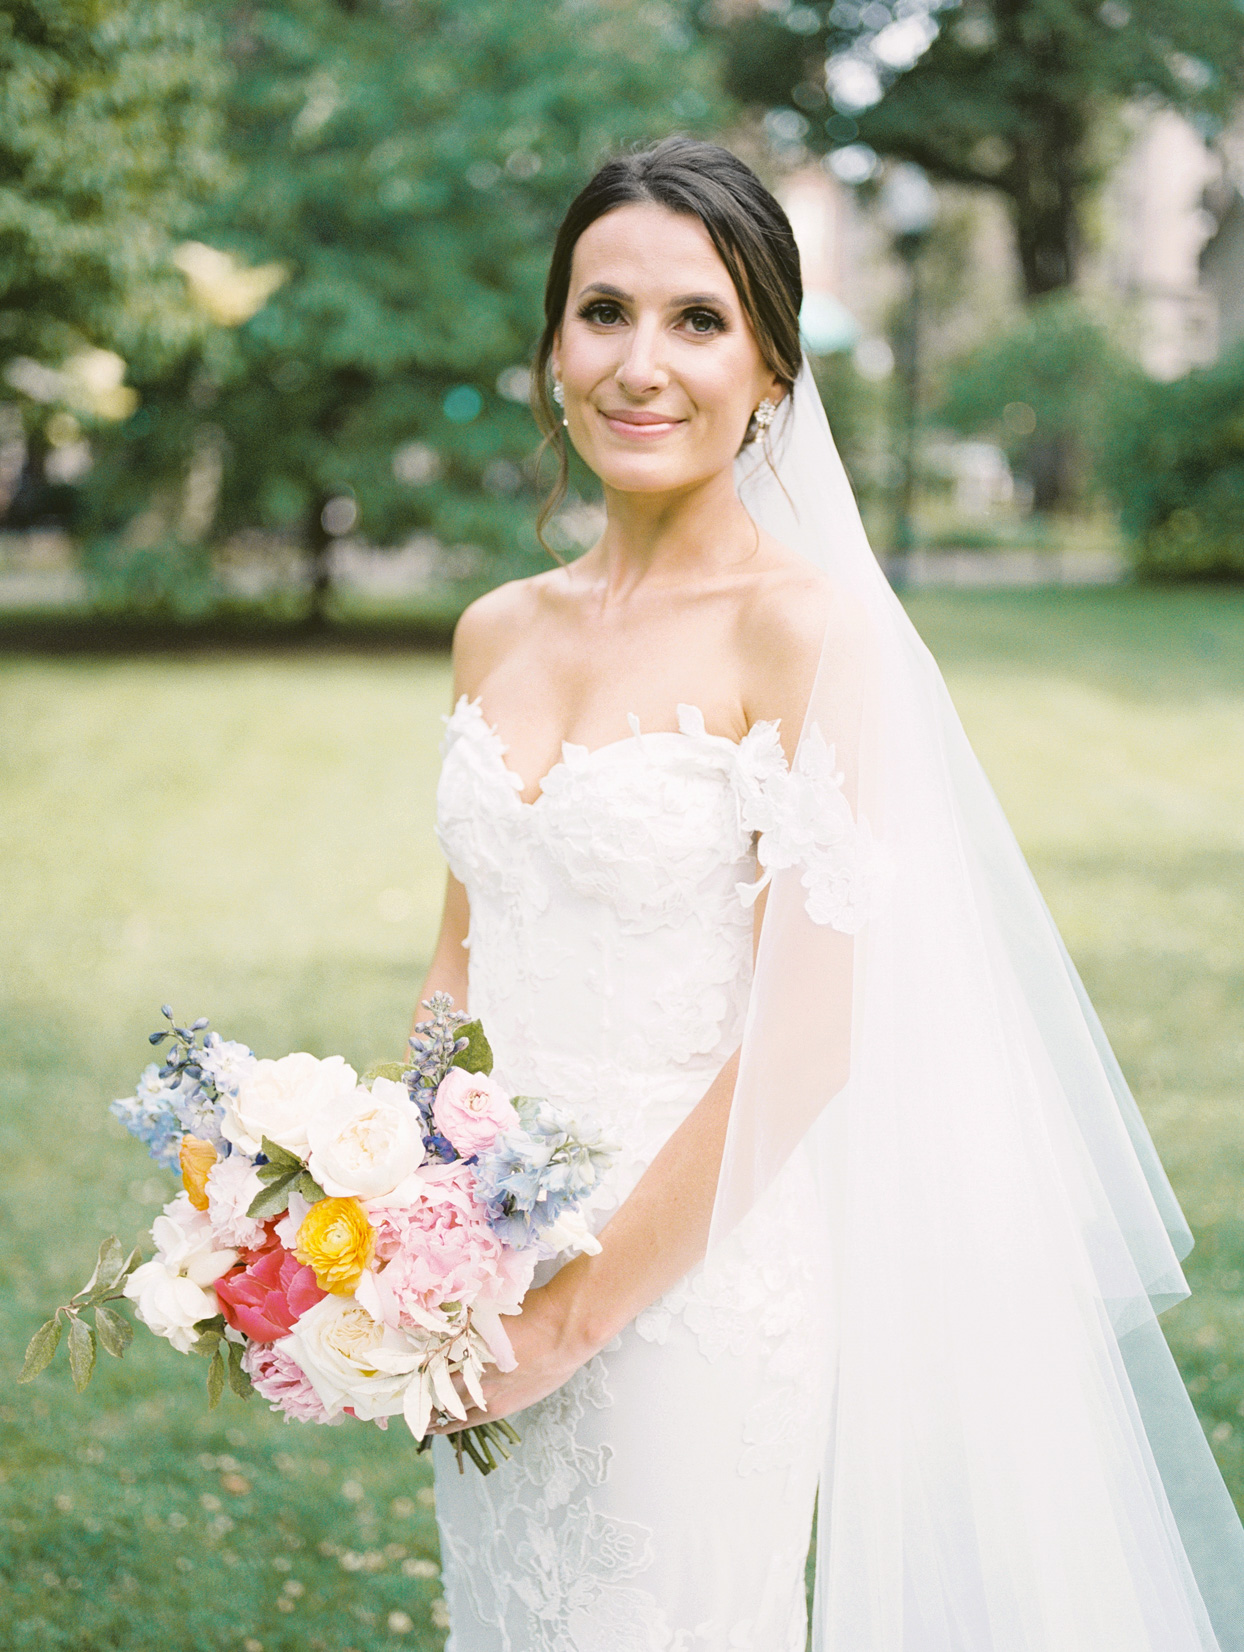 bride wearing wedding dress with sweetheart neckline, fitted bodice, off-the-shoulder straps, and dramatic train